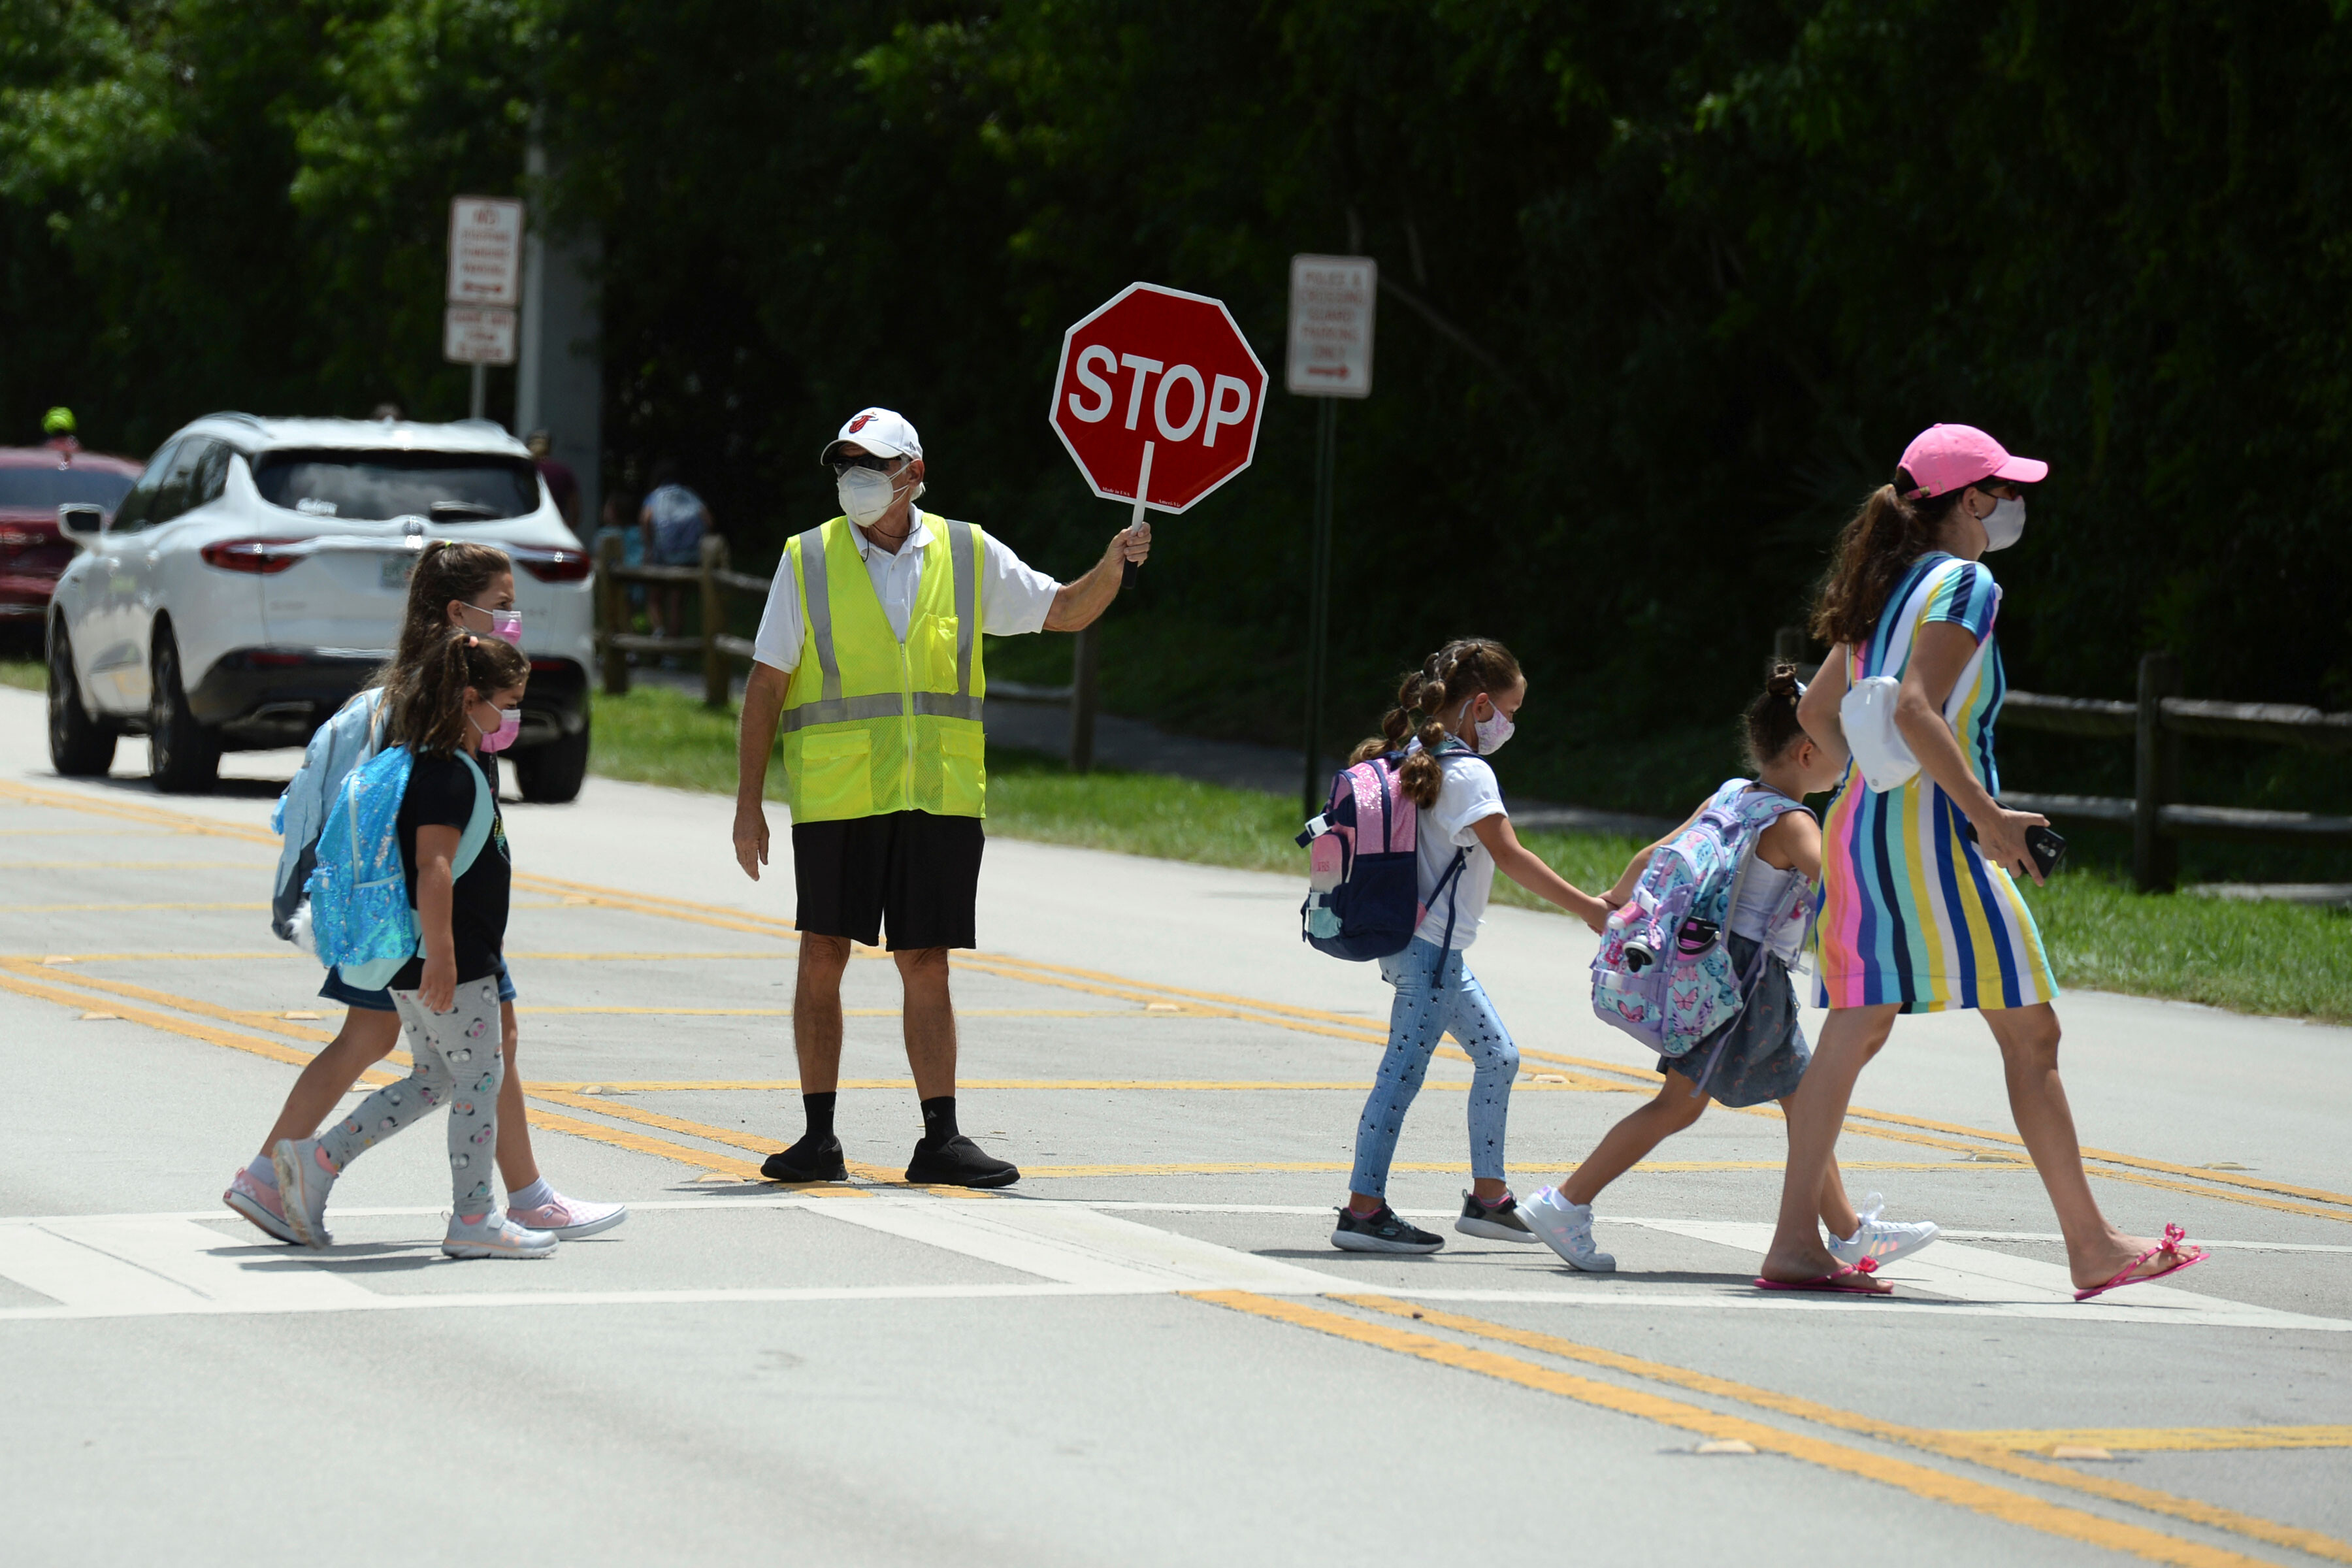 Two Florida counties double down on school mask mandates, defying governor's order